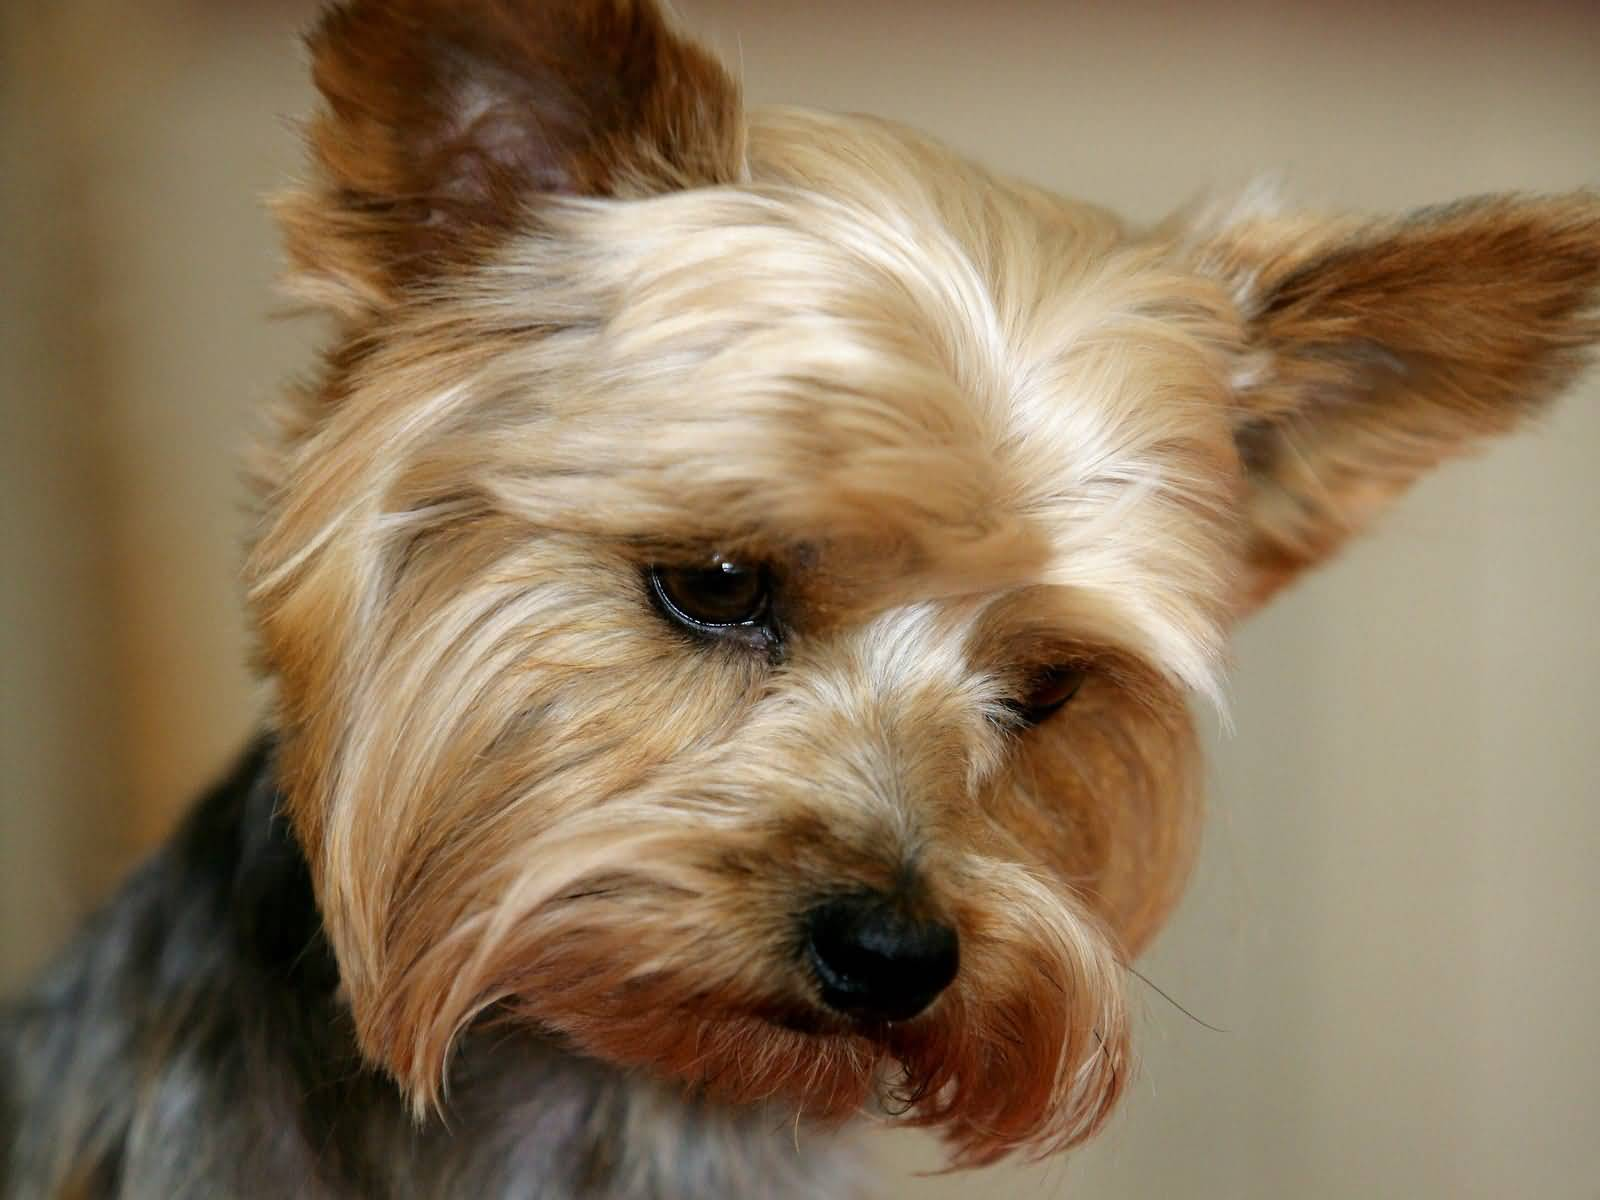 Adorable Yorkshire Terrier Dog Looks So Innocent